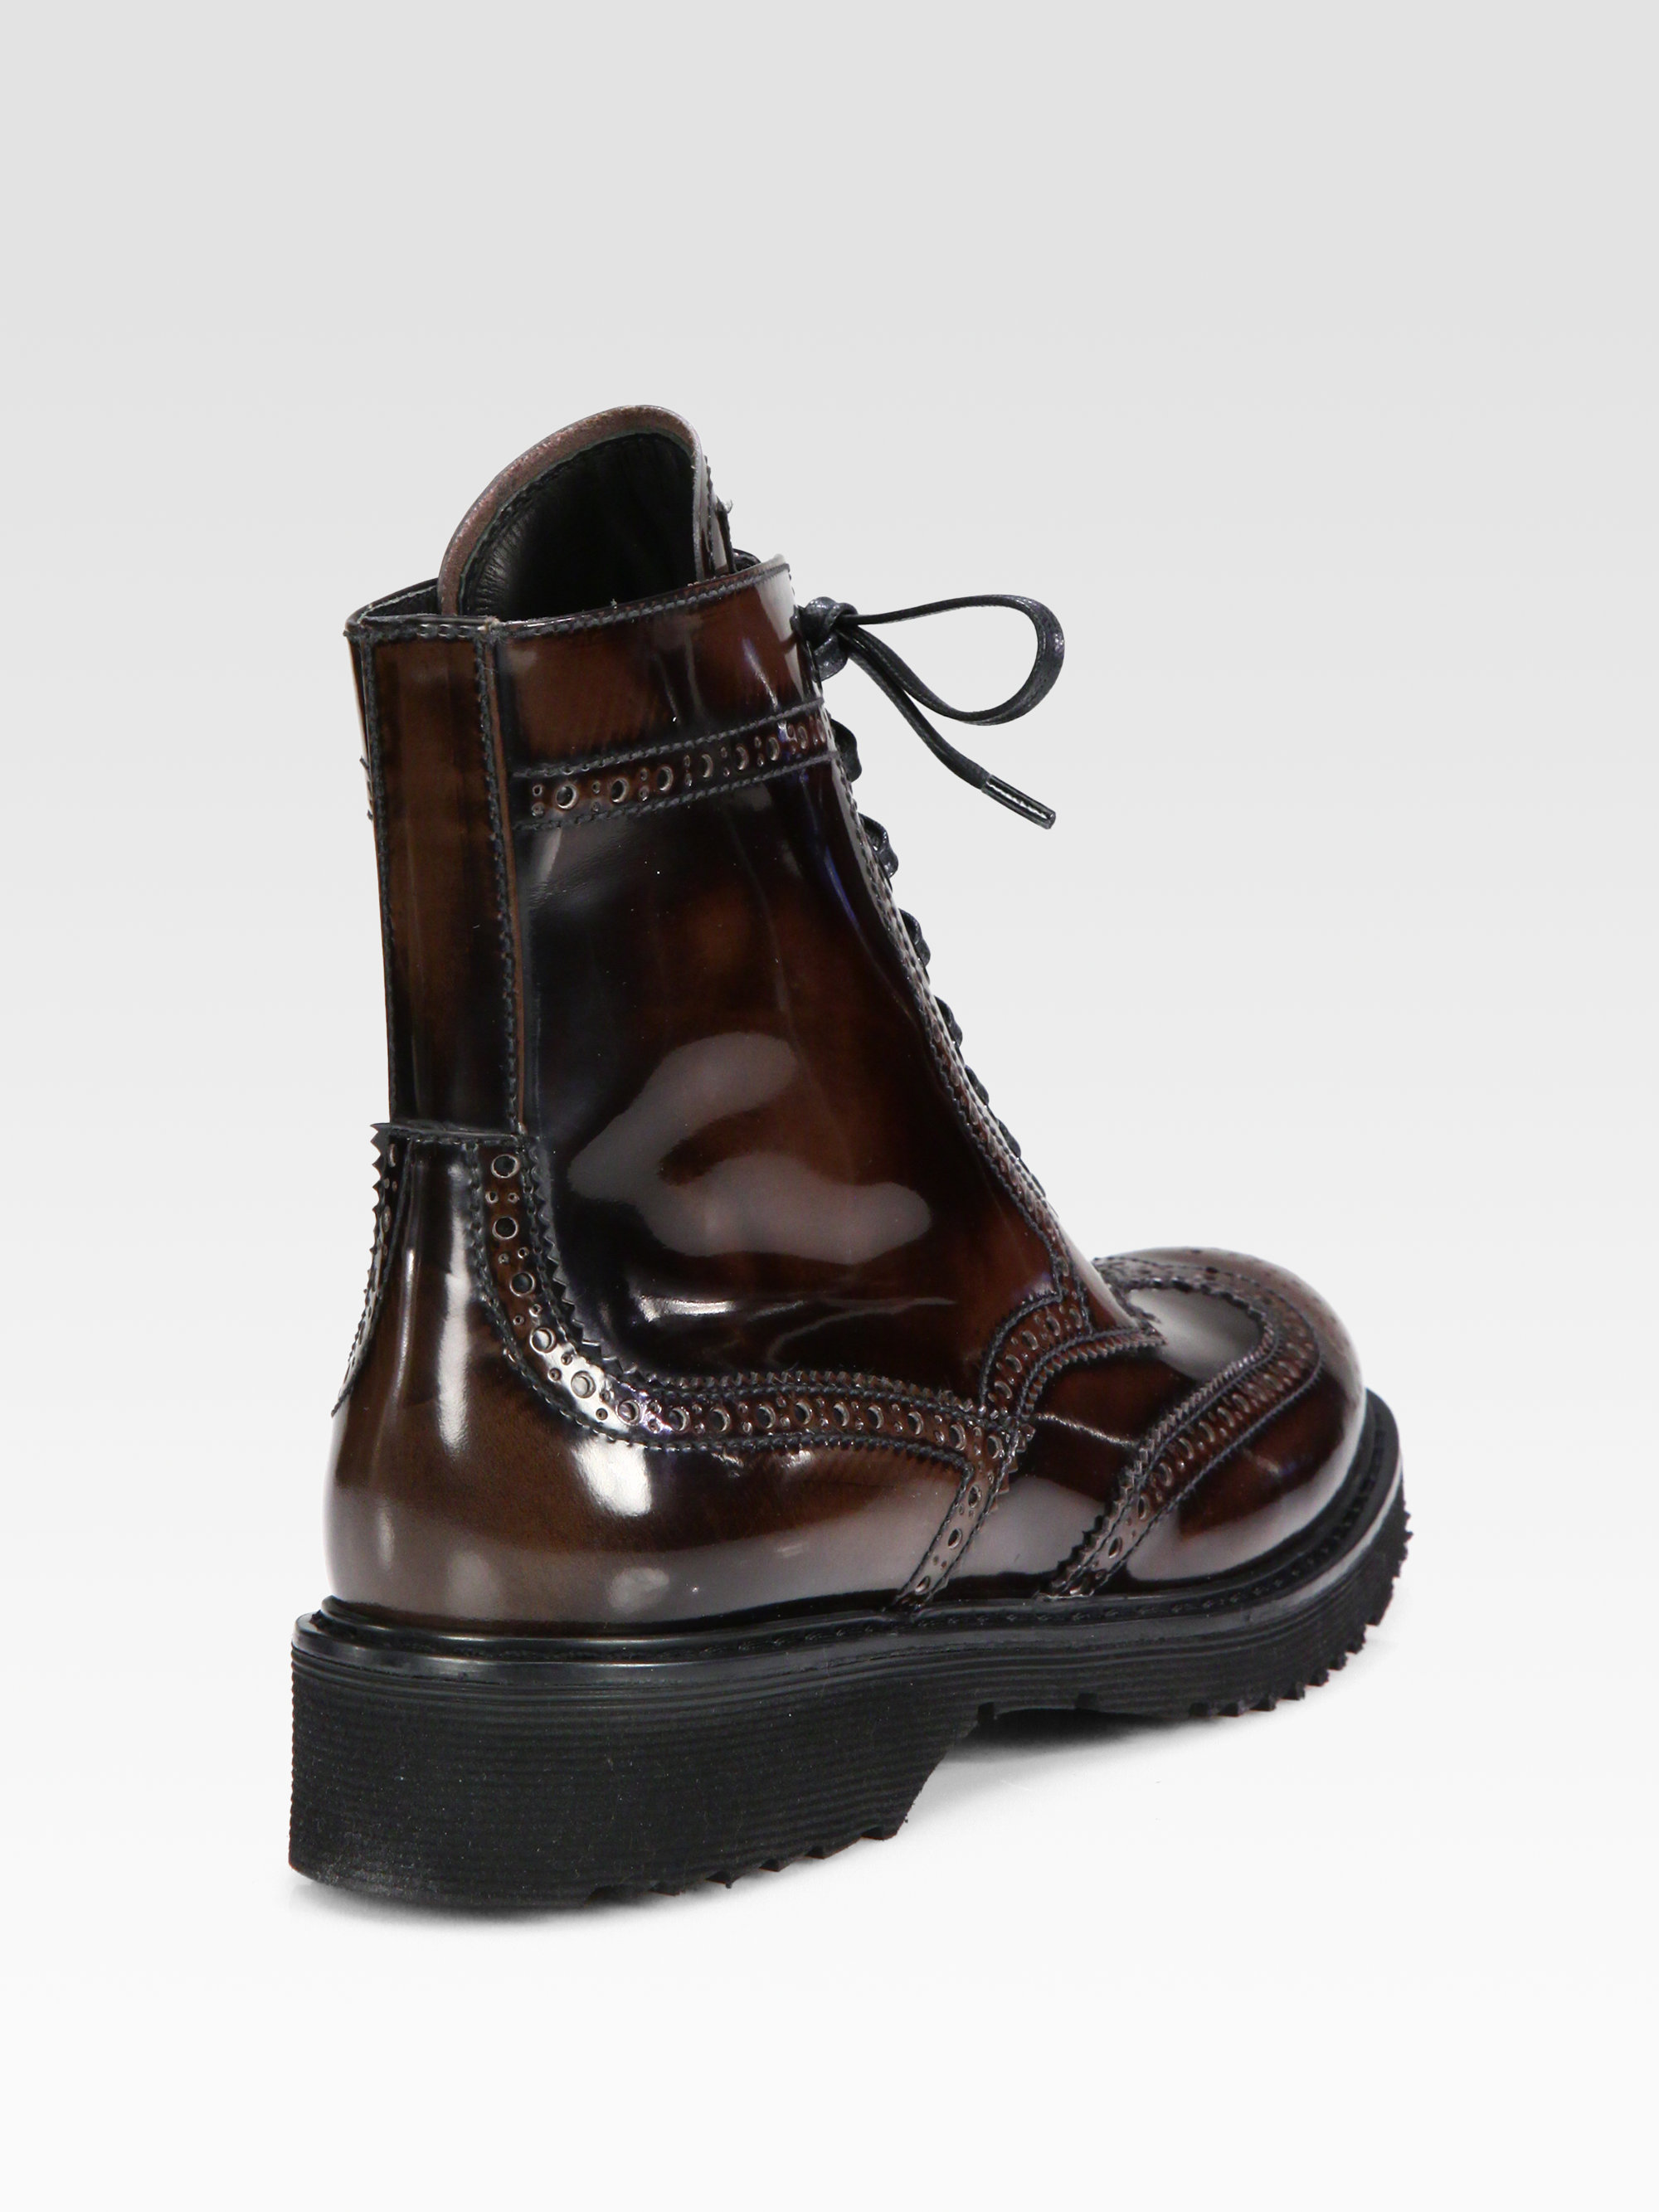 Shop for women's boots at ECCO® official online store. Find the best women's boots, black boots, leather boots, chelsea boots, work boots, GORE-TEX® boots & more. Free Standard Shipping on orders above $!